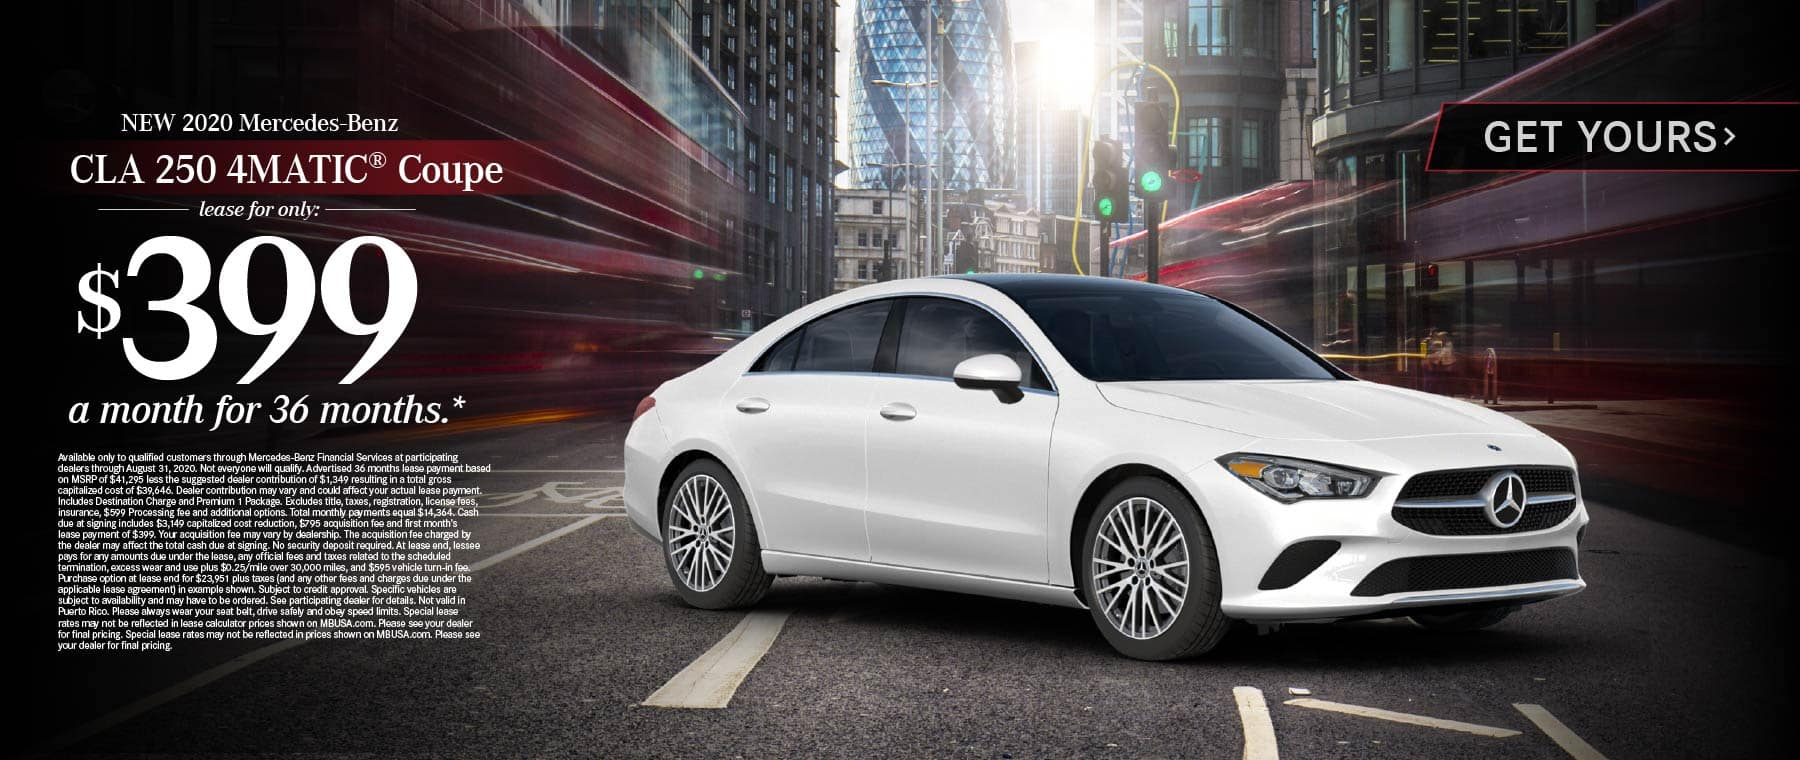 2020 Mercedes Benz CLA 250 4MATIC Coupe lease for only: $399 a month for 36 months* Get Yours.